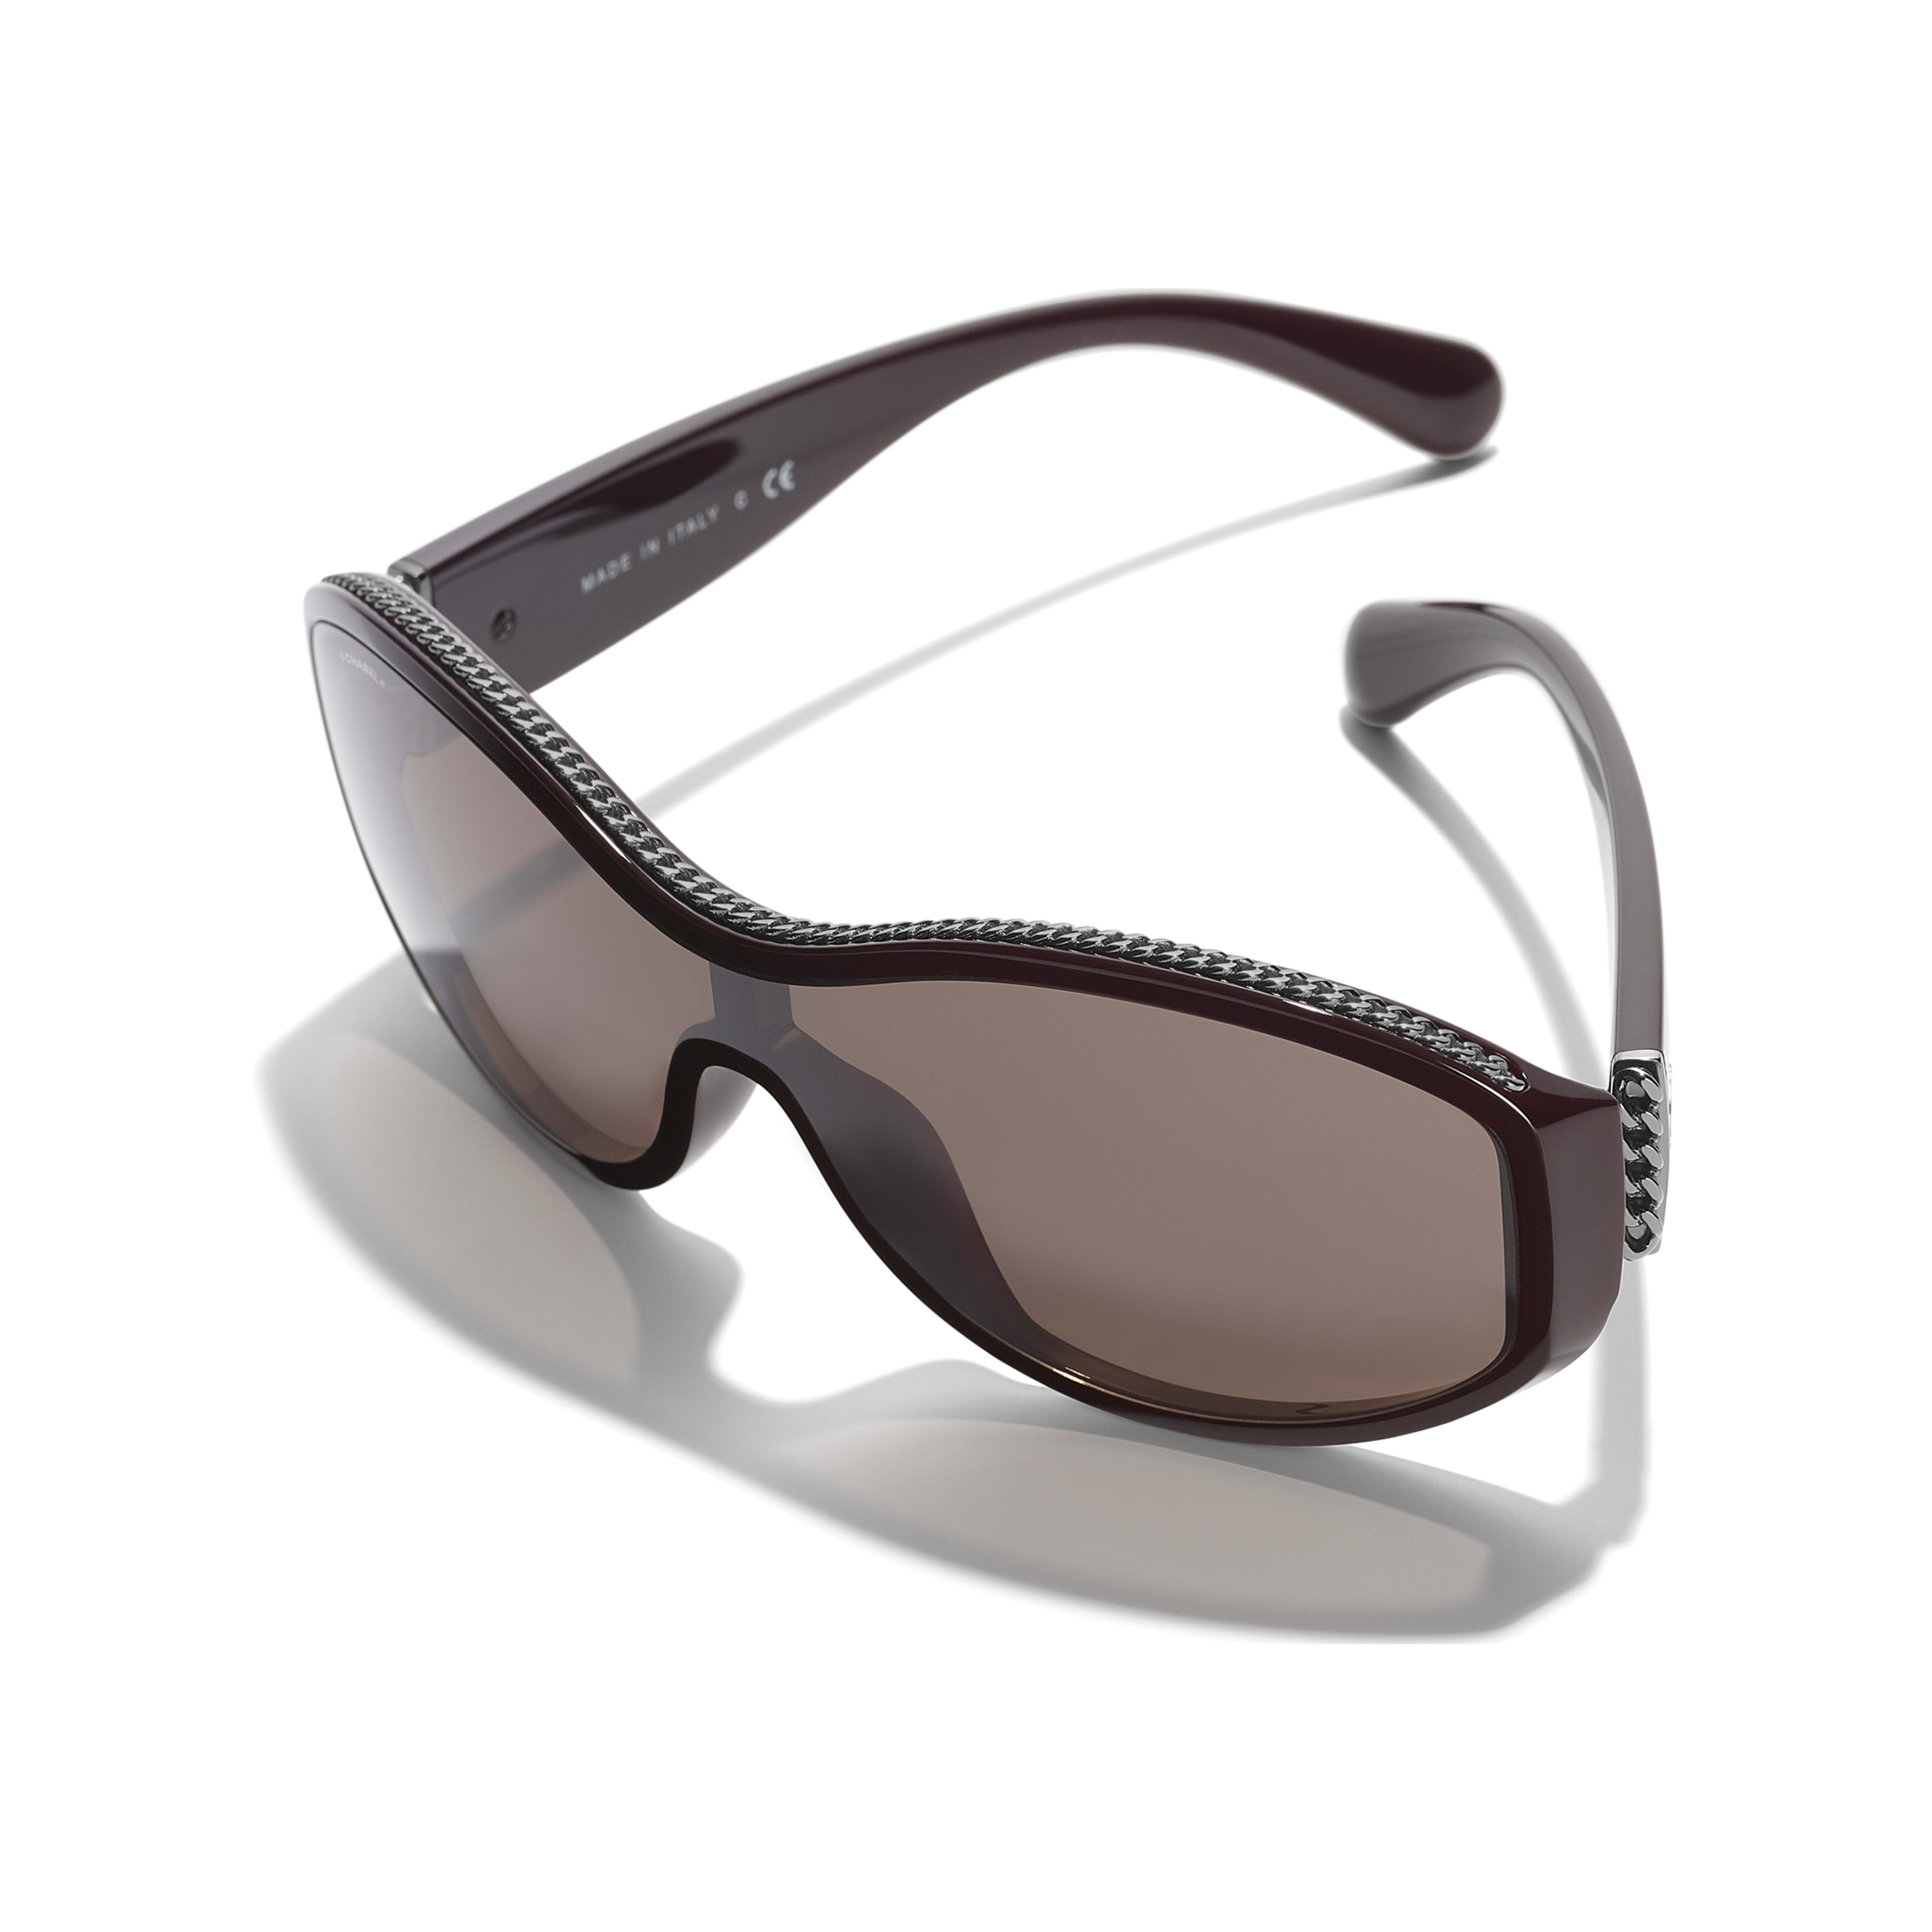 Shield Sunglasses - Burgundy - Nylon & Metal - Extra view - see full sized version